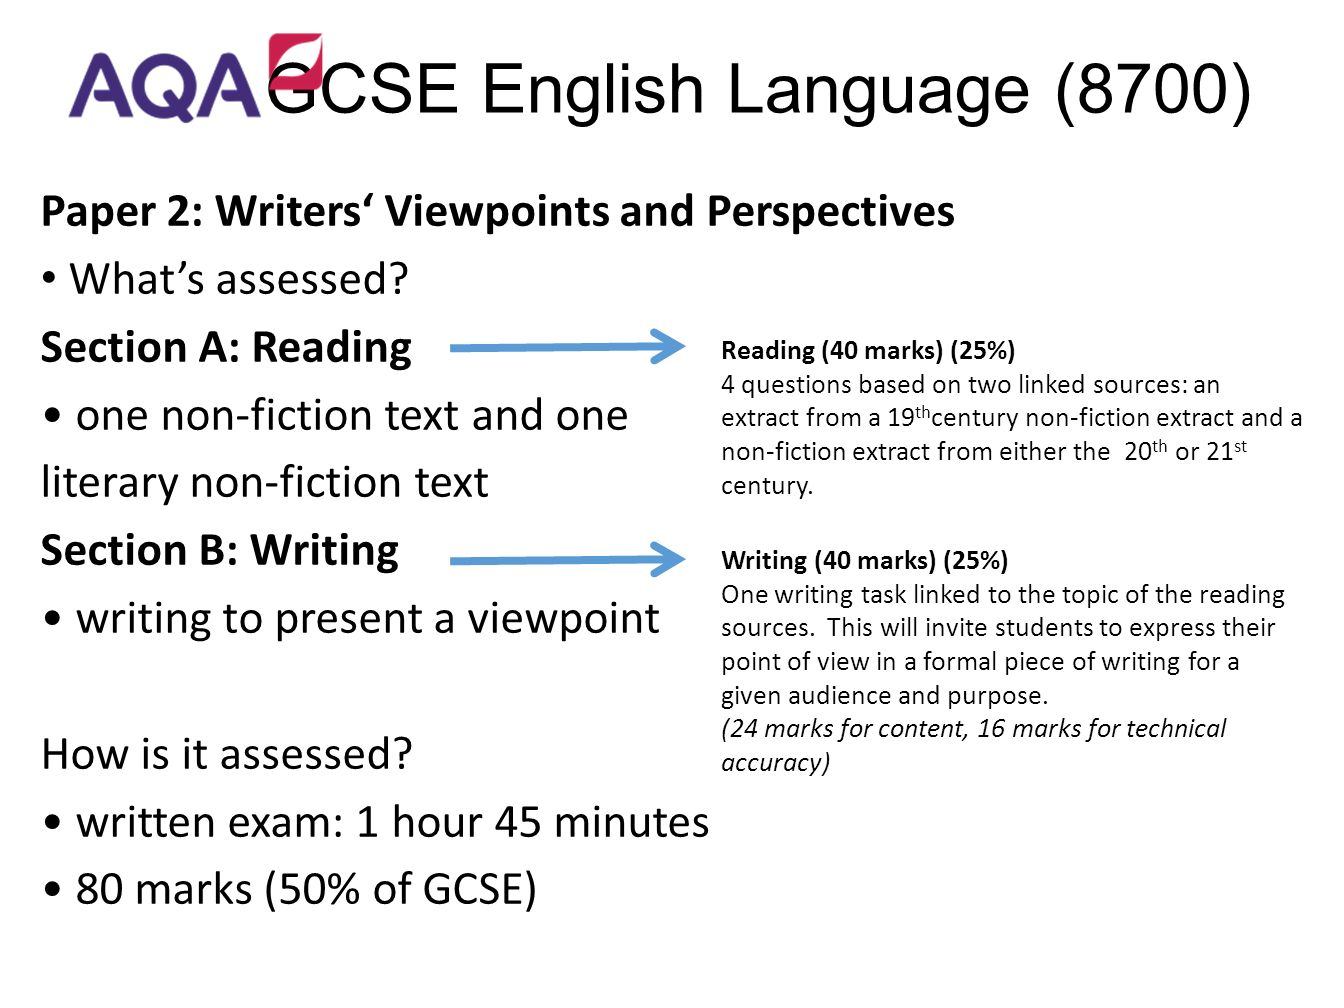 a guide to writting gcse coursework and getting top marks